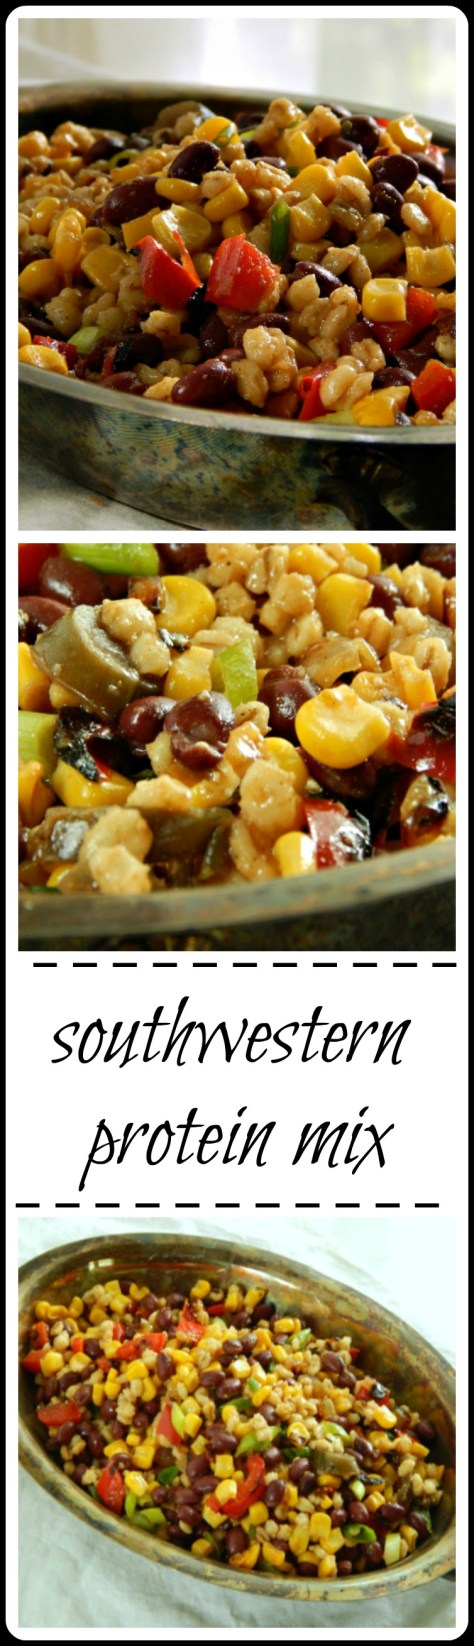 Southwestern Protein Mix: So much better than the frozen stuff!